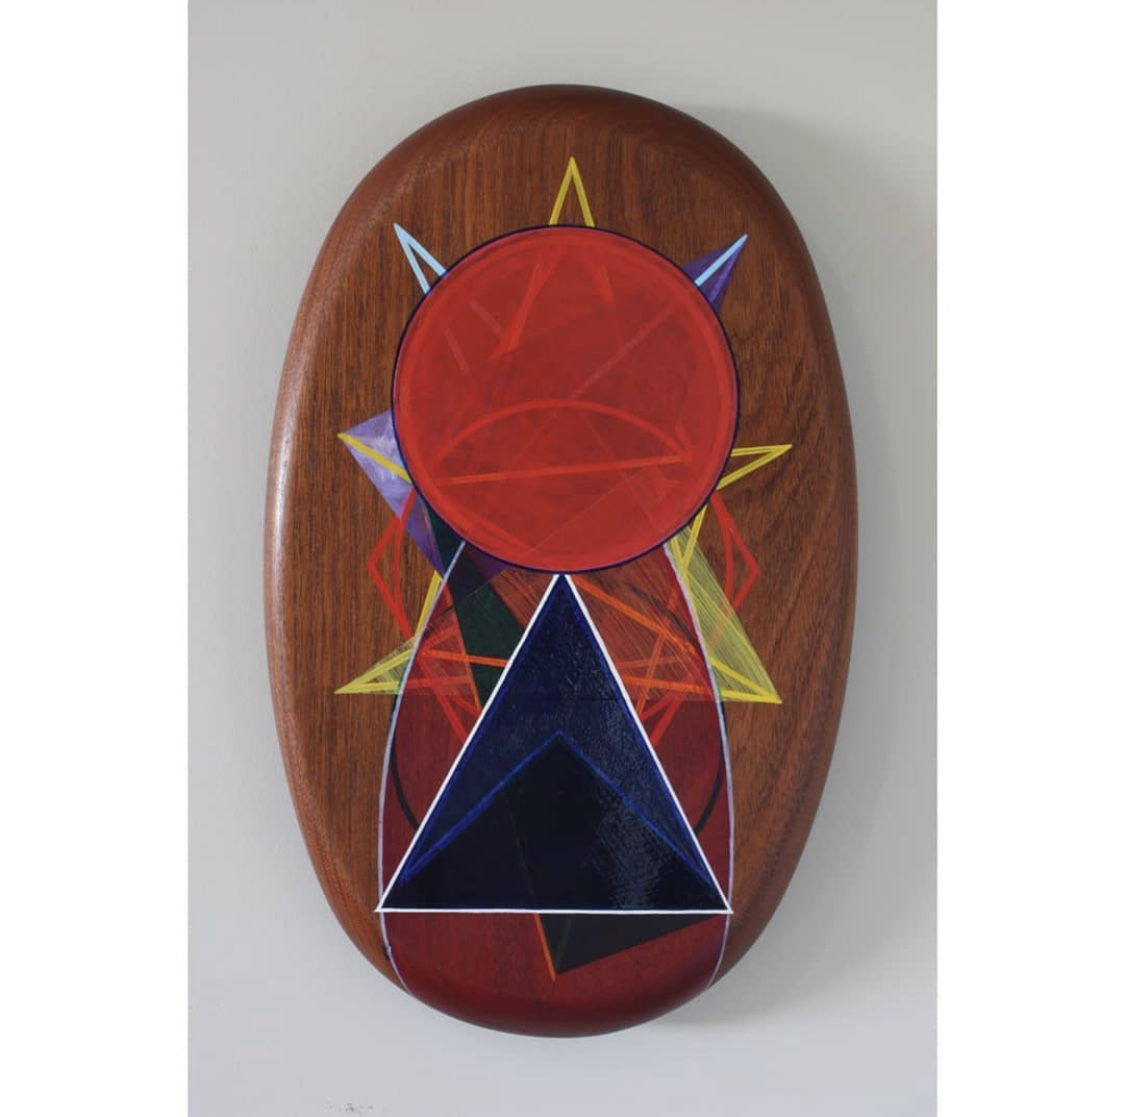 'AO#2' Duane Moyle, Oil and gold leaf on timber serve ware $440 (350x218mm)